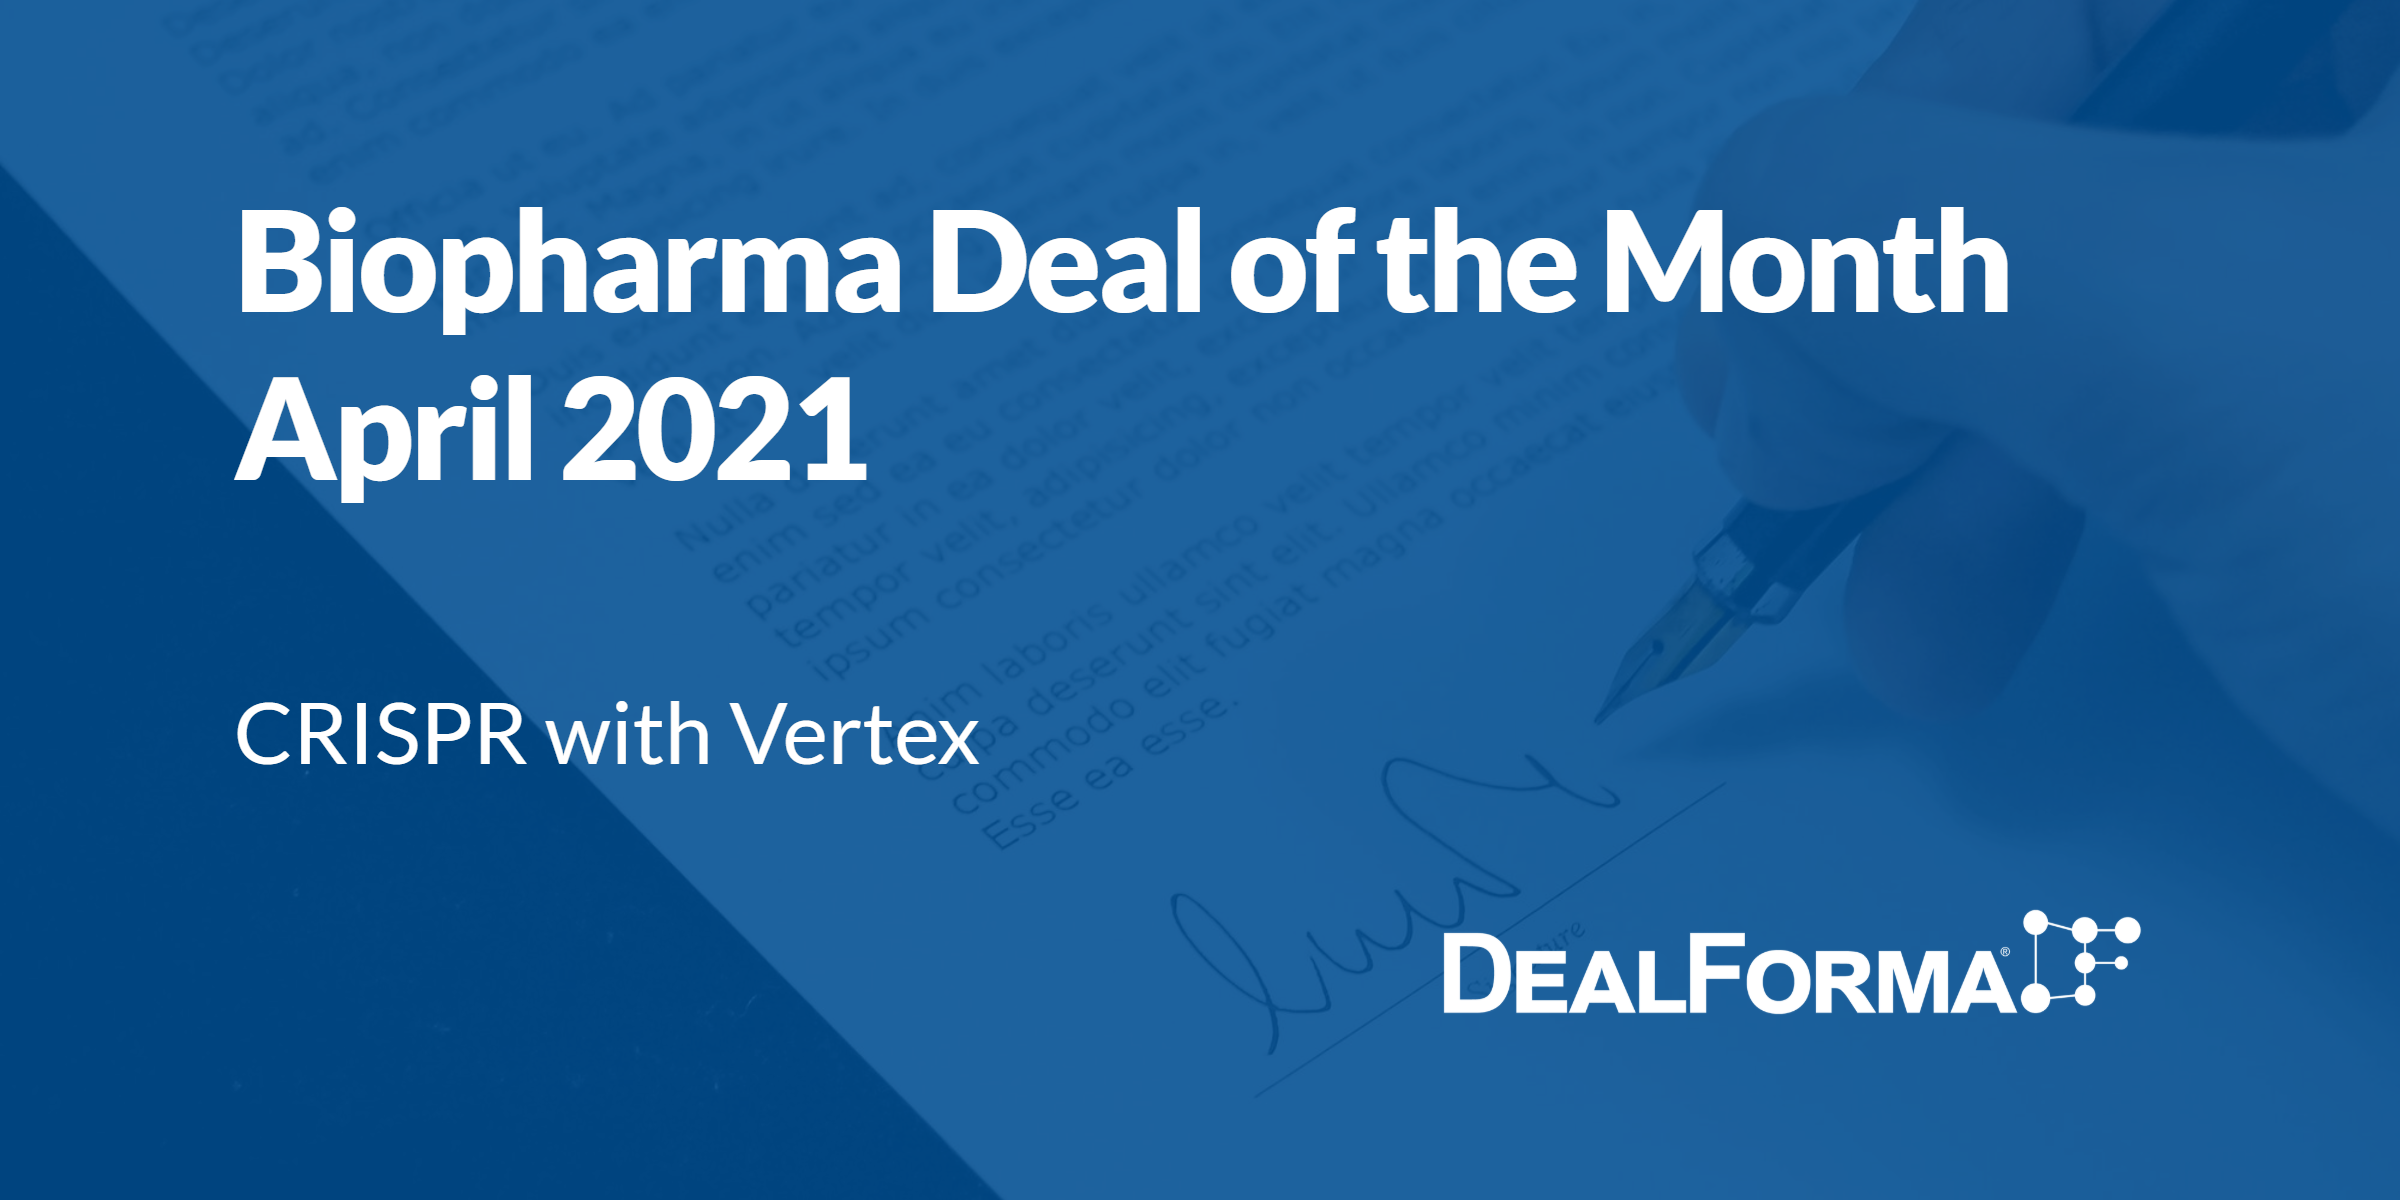 Top biopharma deal upfront April 2021